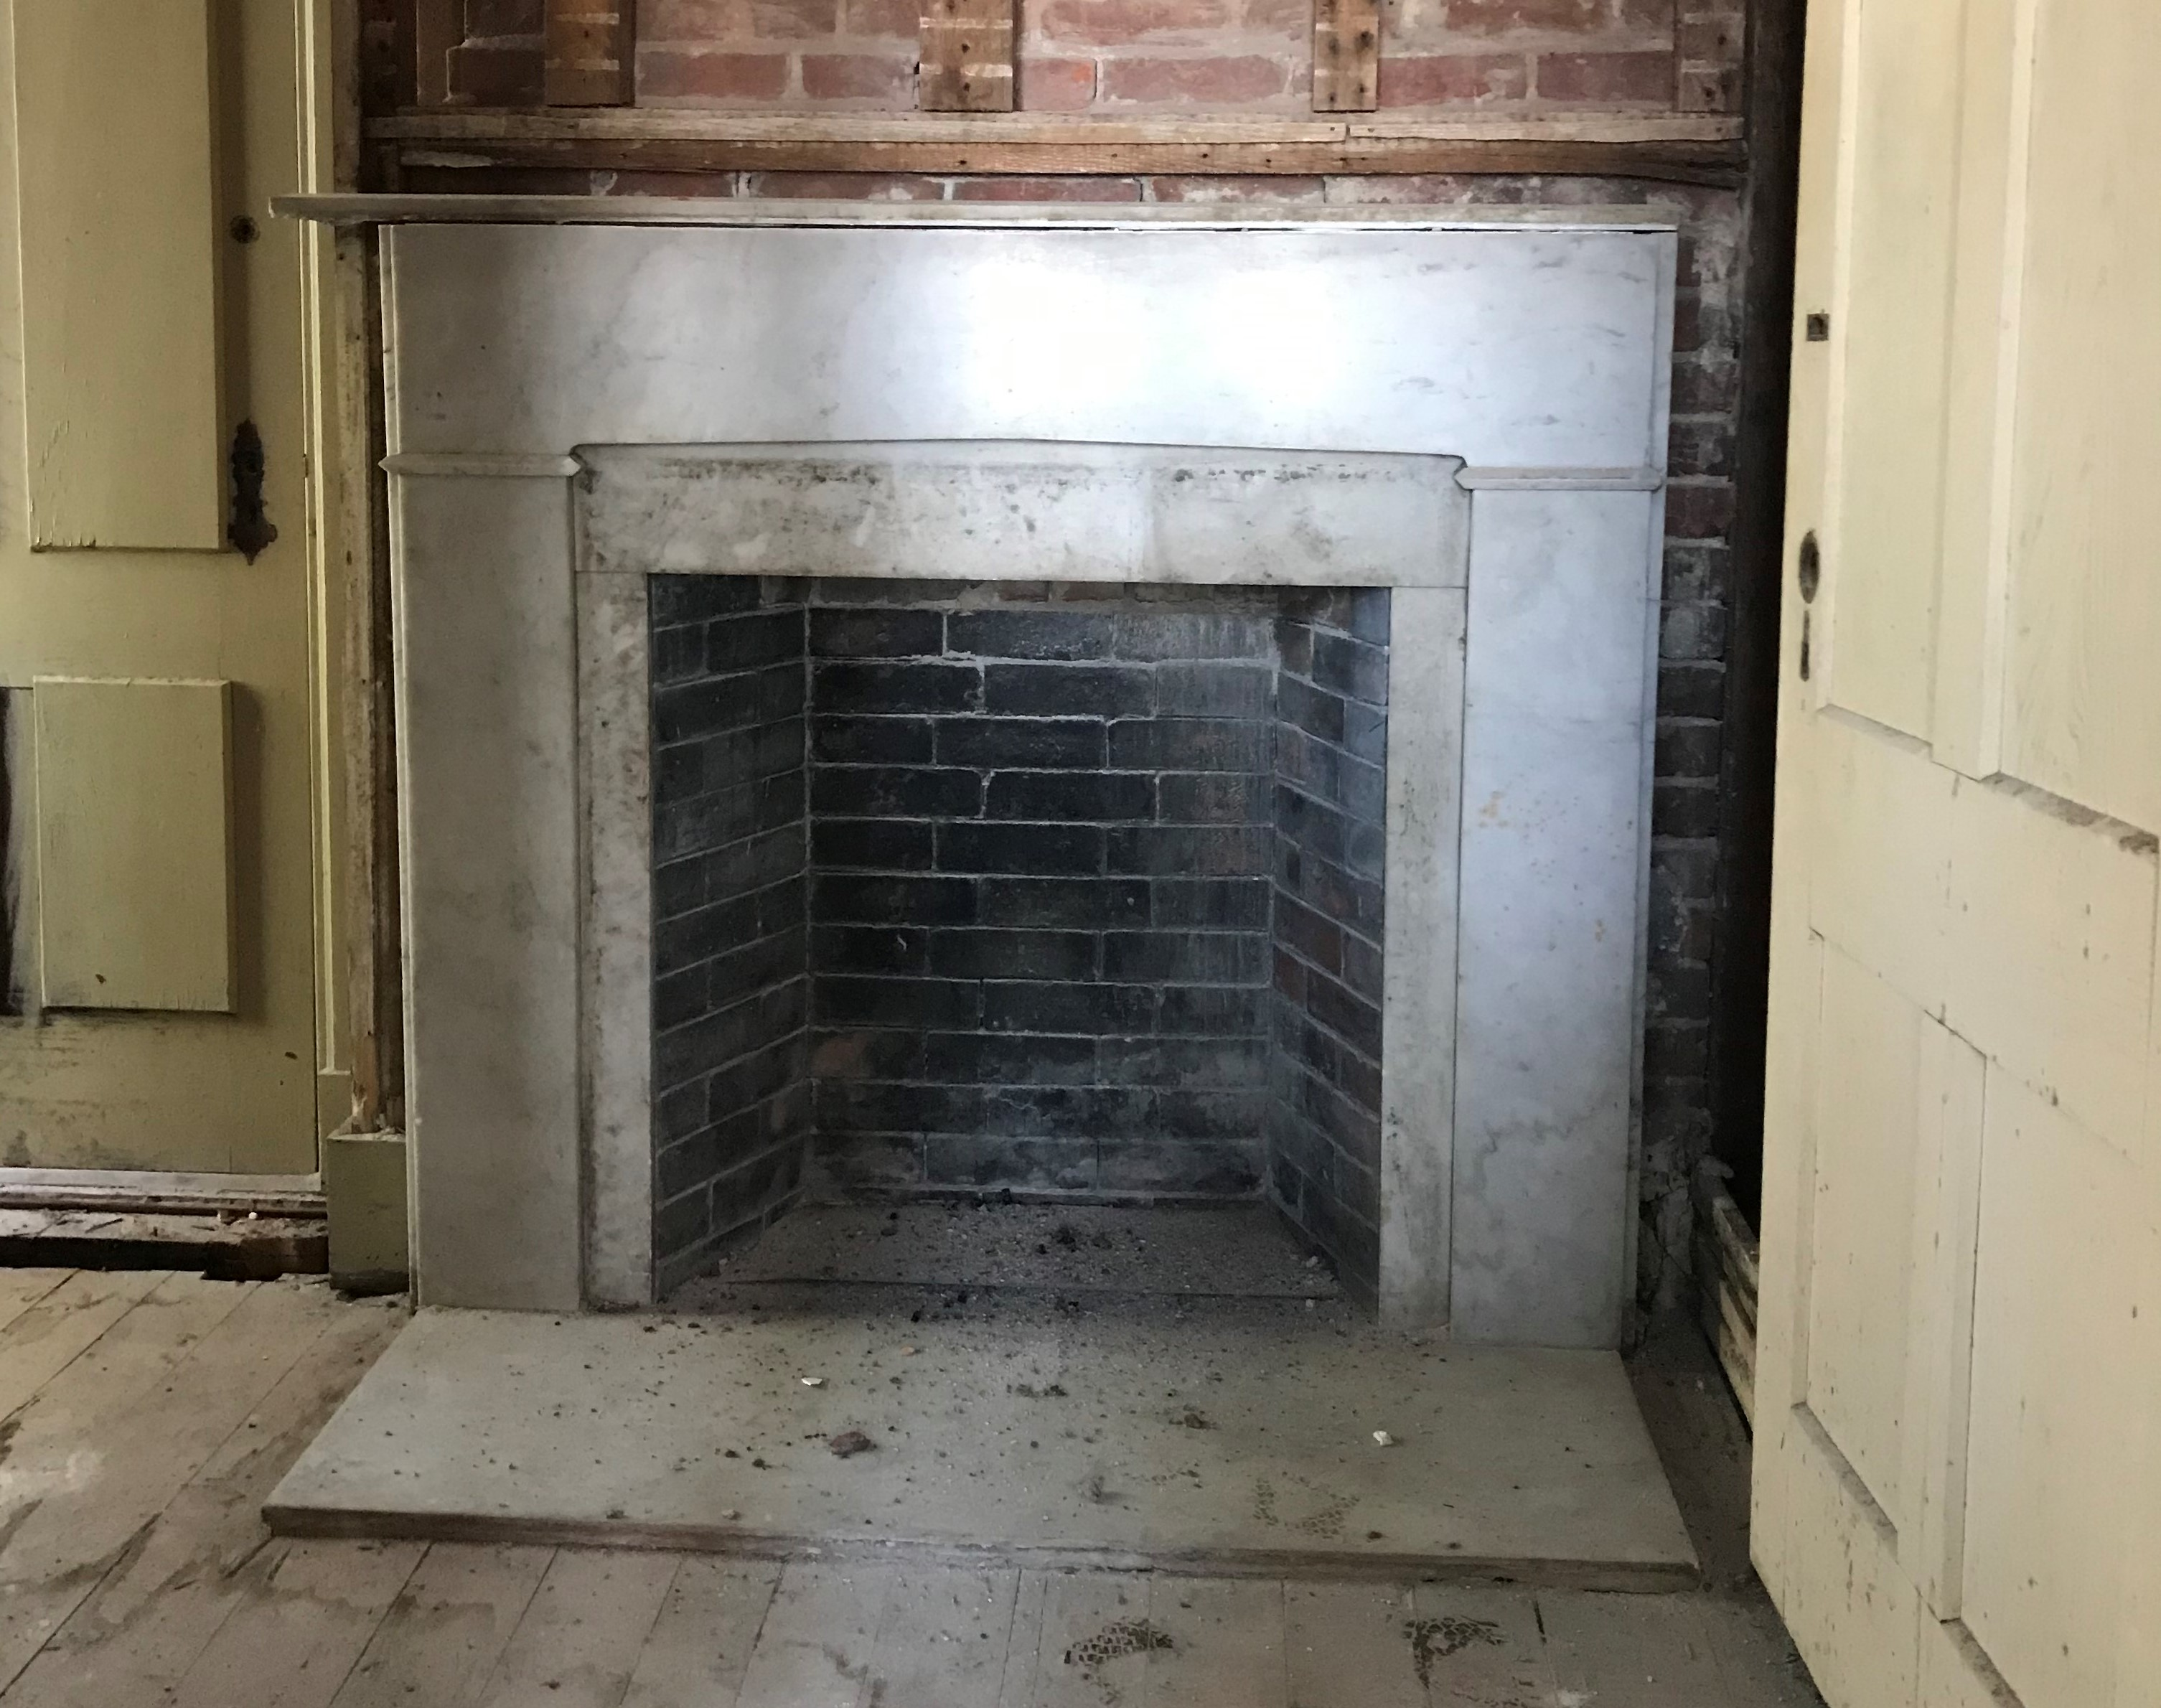 WHALE Moment: Rumford Fireplace